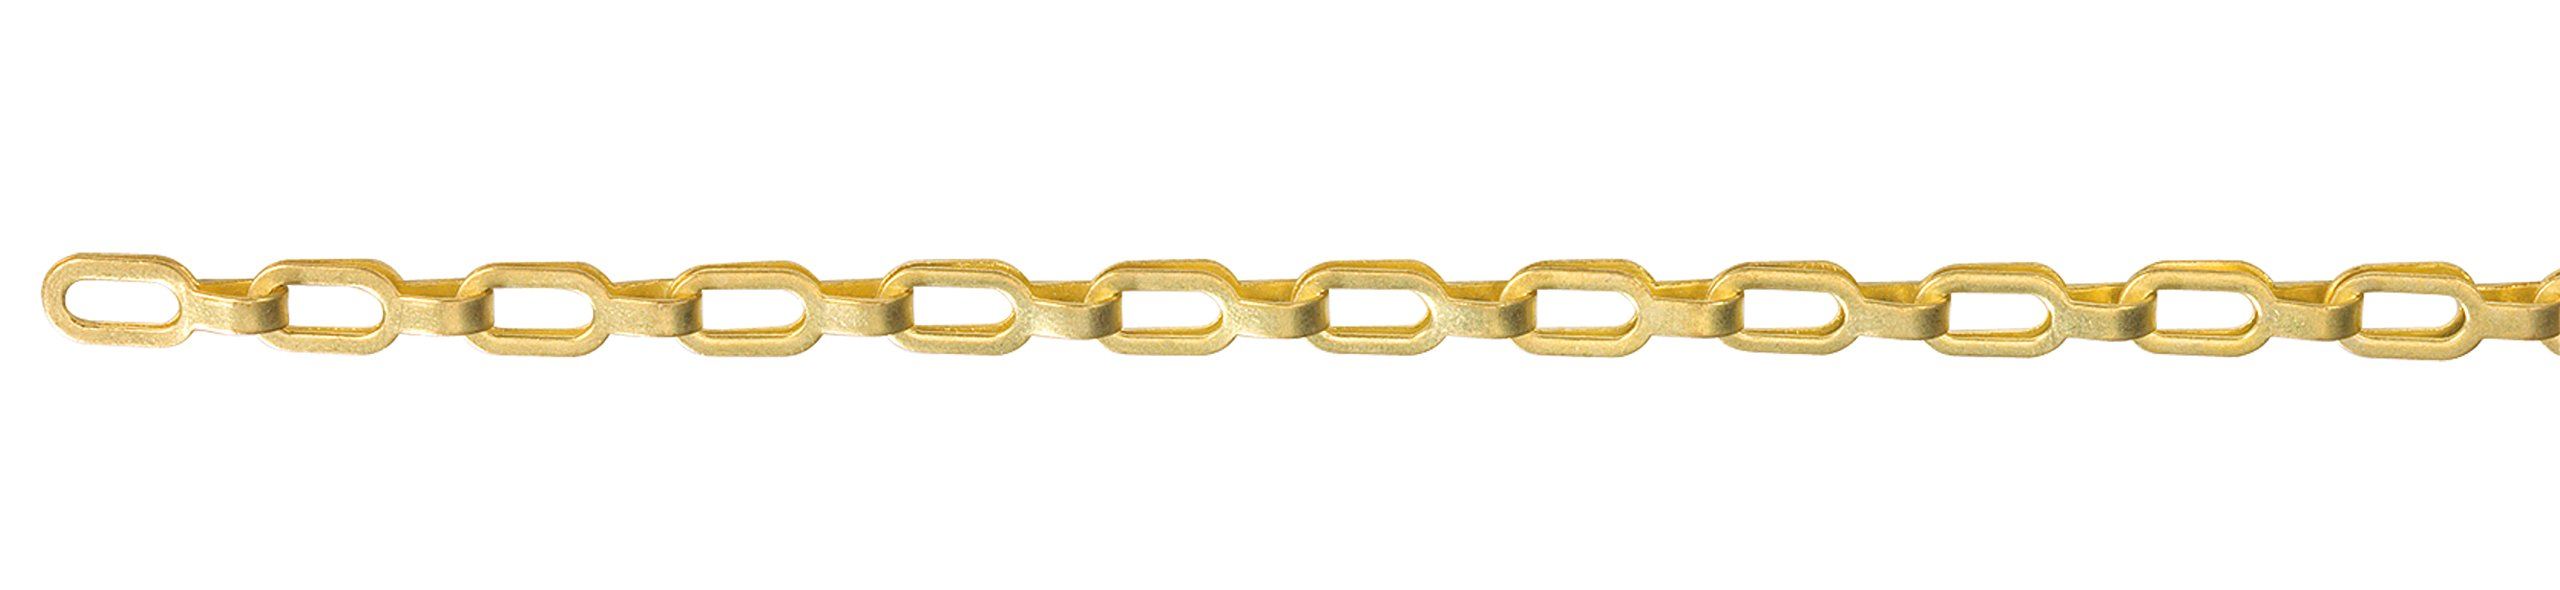 KingChain 502895 Solid Brass SAFETY Plumber Chain by KingChain